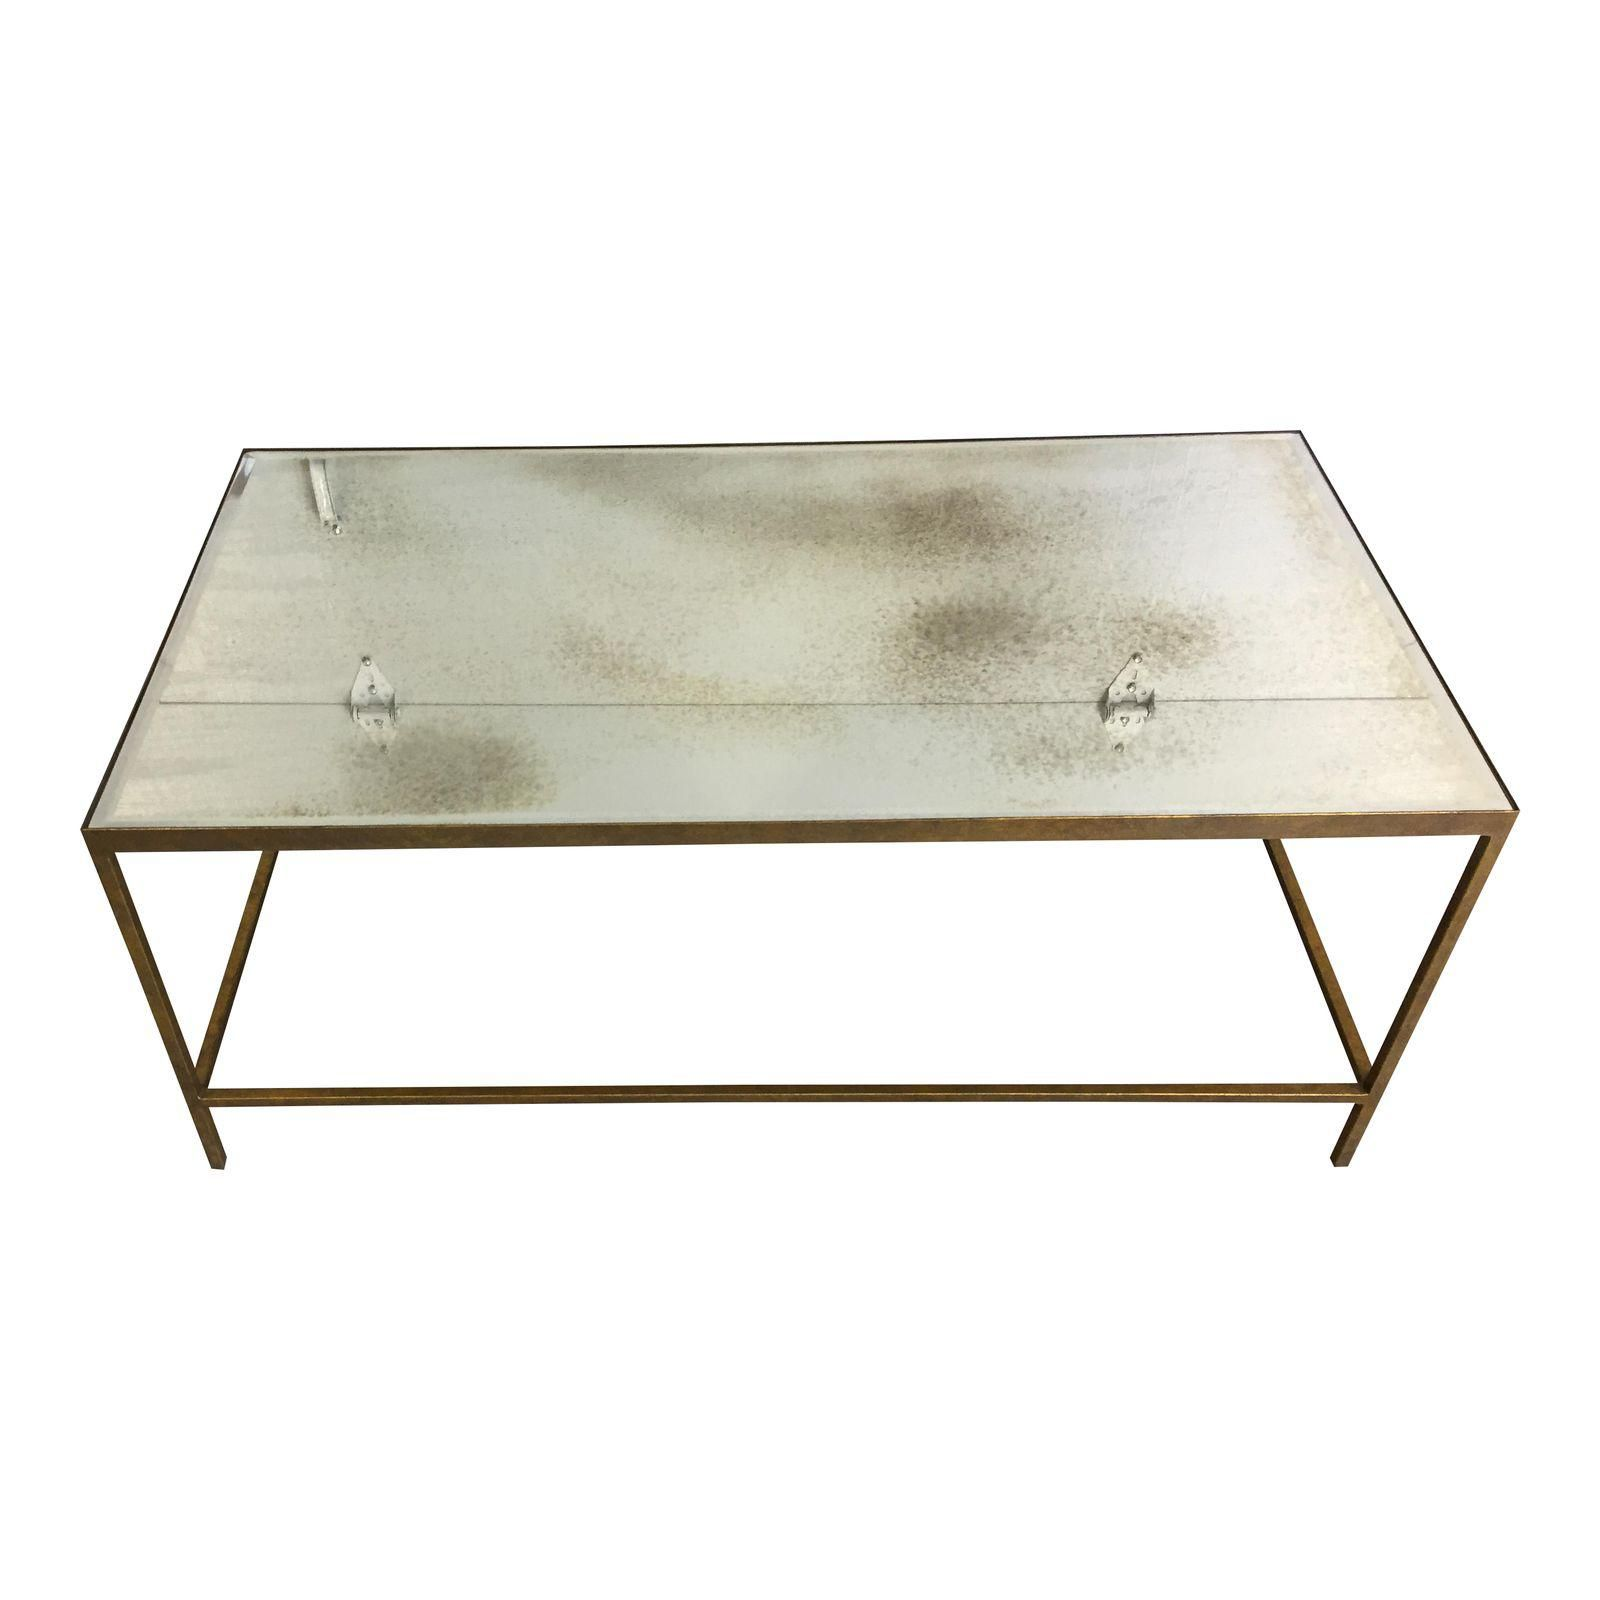 Goldleaf Antique Glass Coffee Table 44x24dx18h 500 Glass Coffee Table Types Of Coffee Tables Ottoman Coffee Table